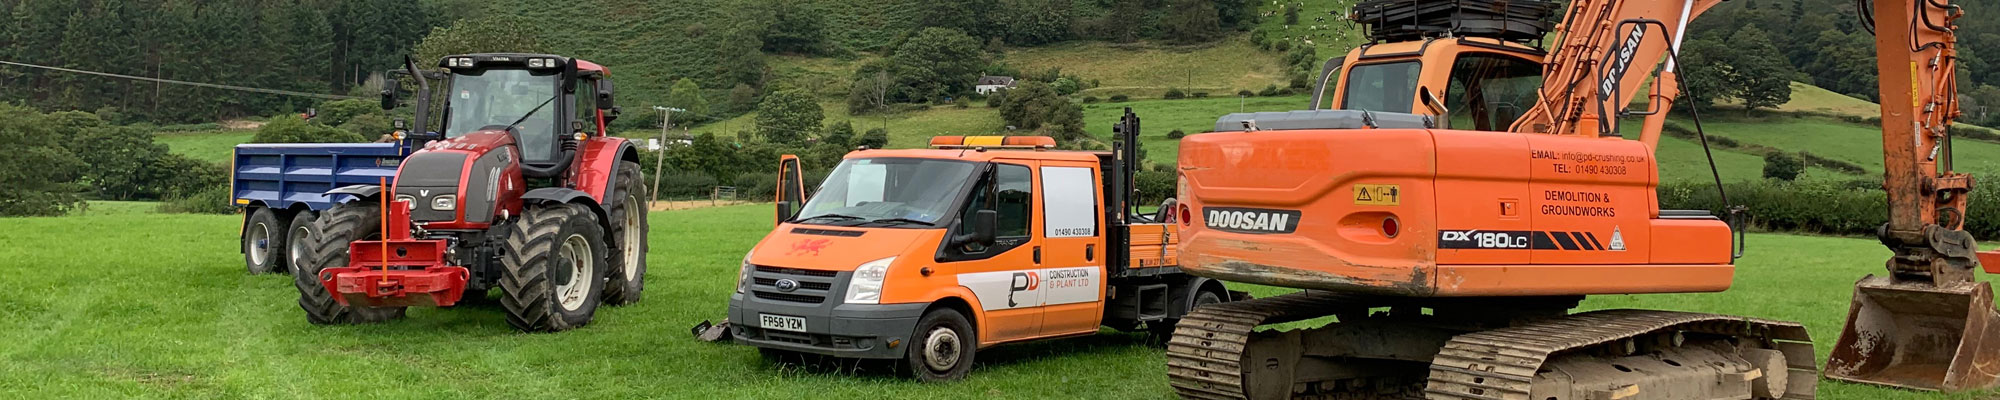 Groundworks equipment in North Wales